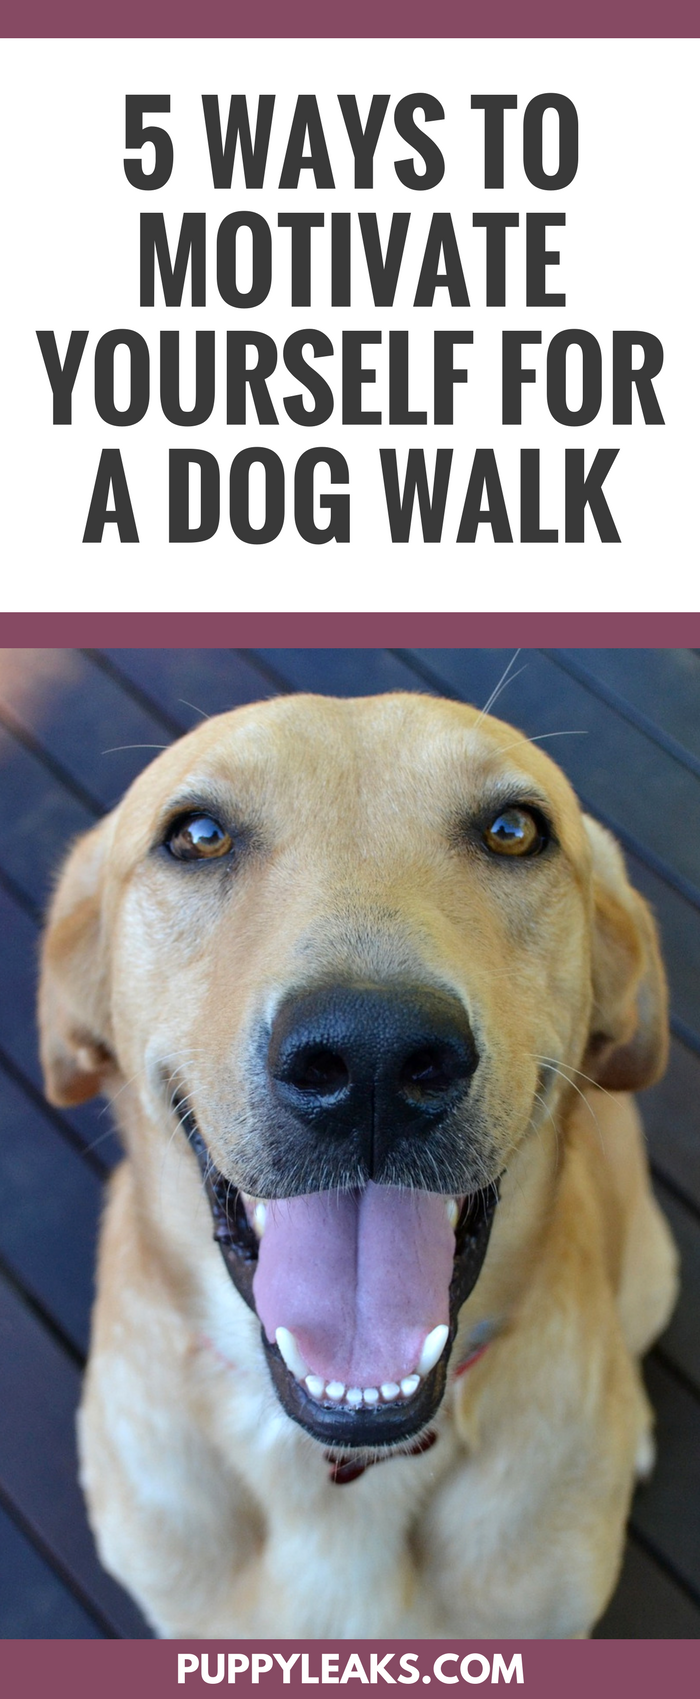 5 Ways to Motivate Yourself for a Dog Walk. Dog walking tips to make your daily walk more fun and enjoyable.